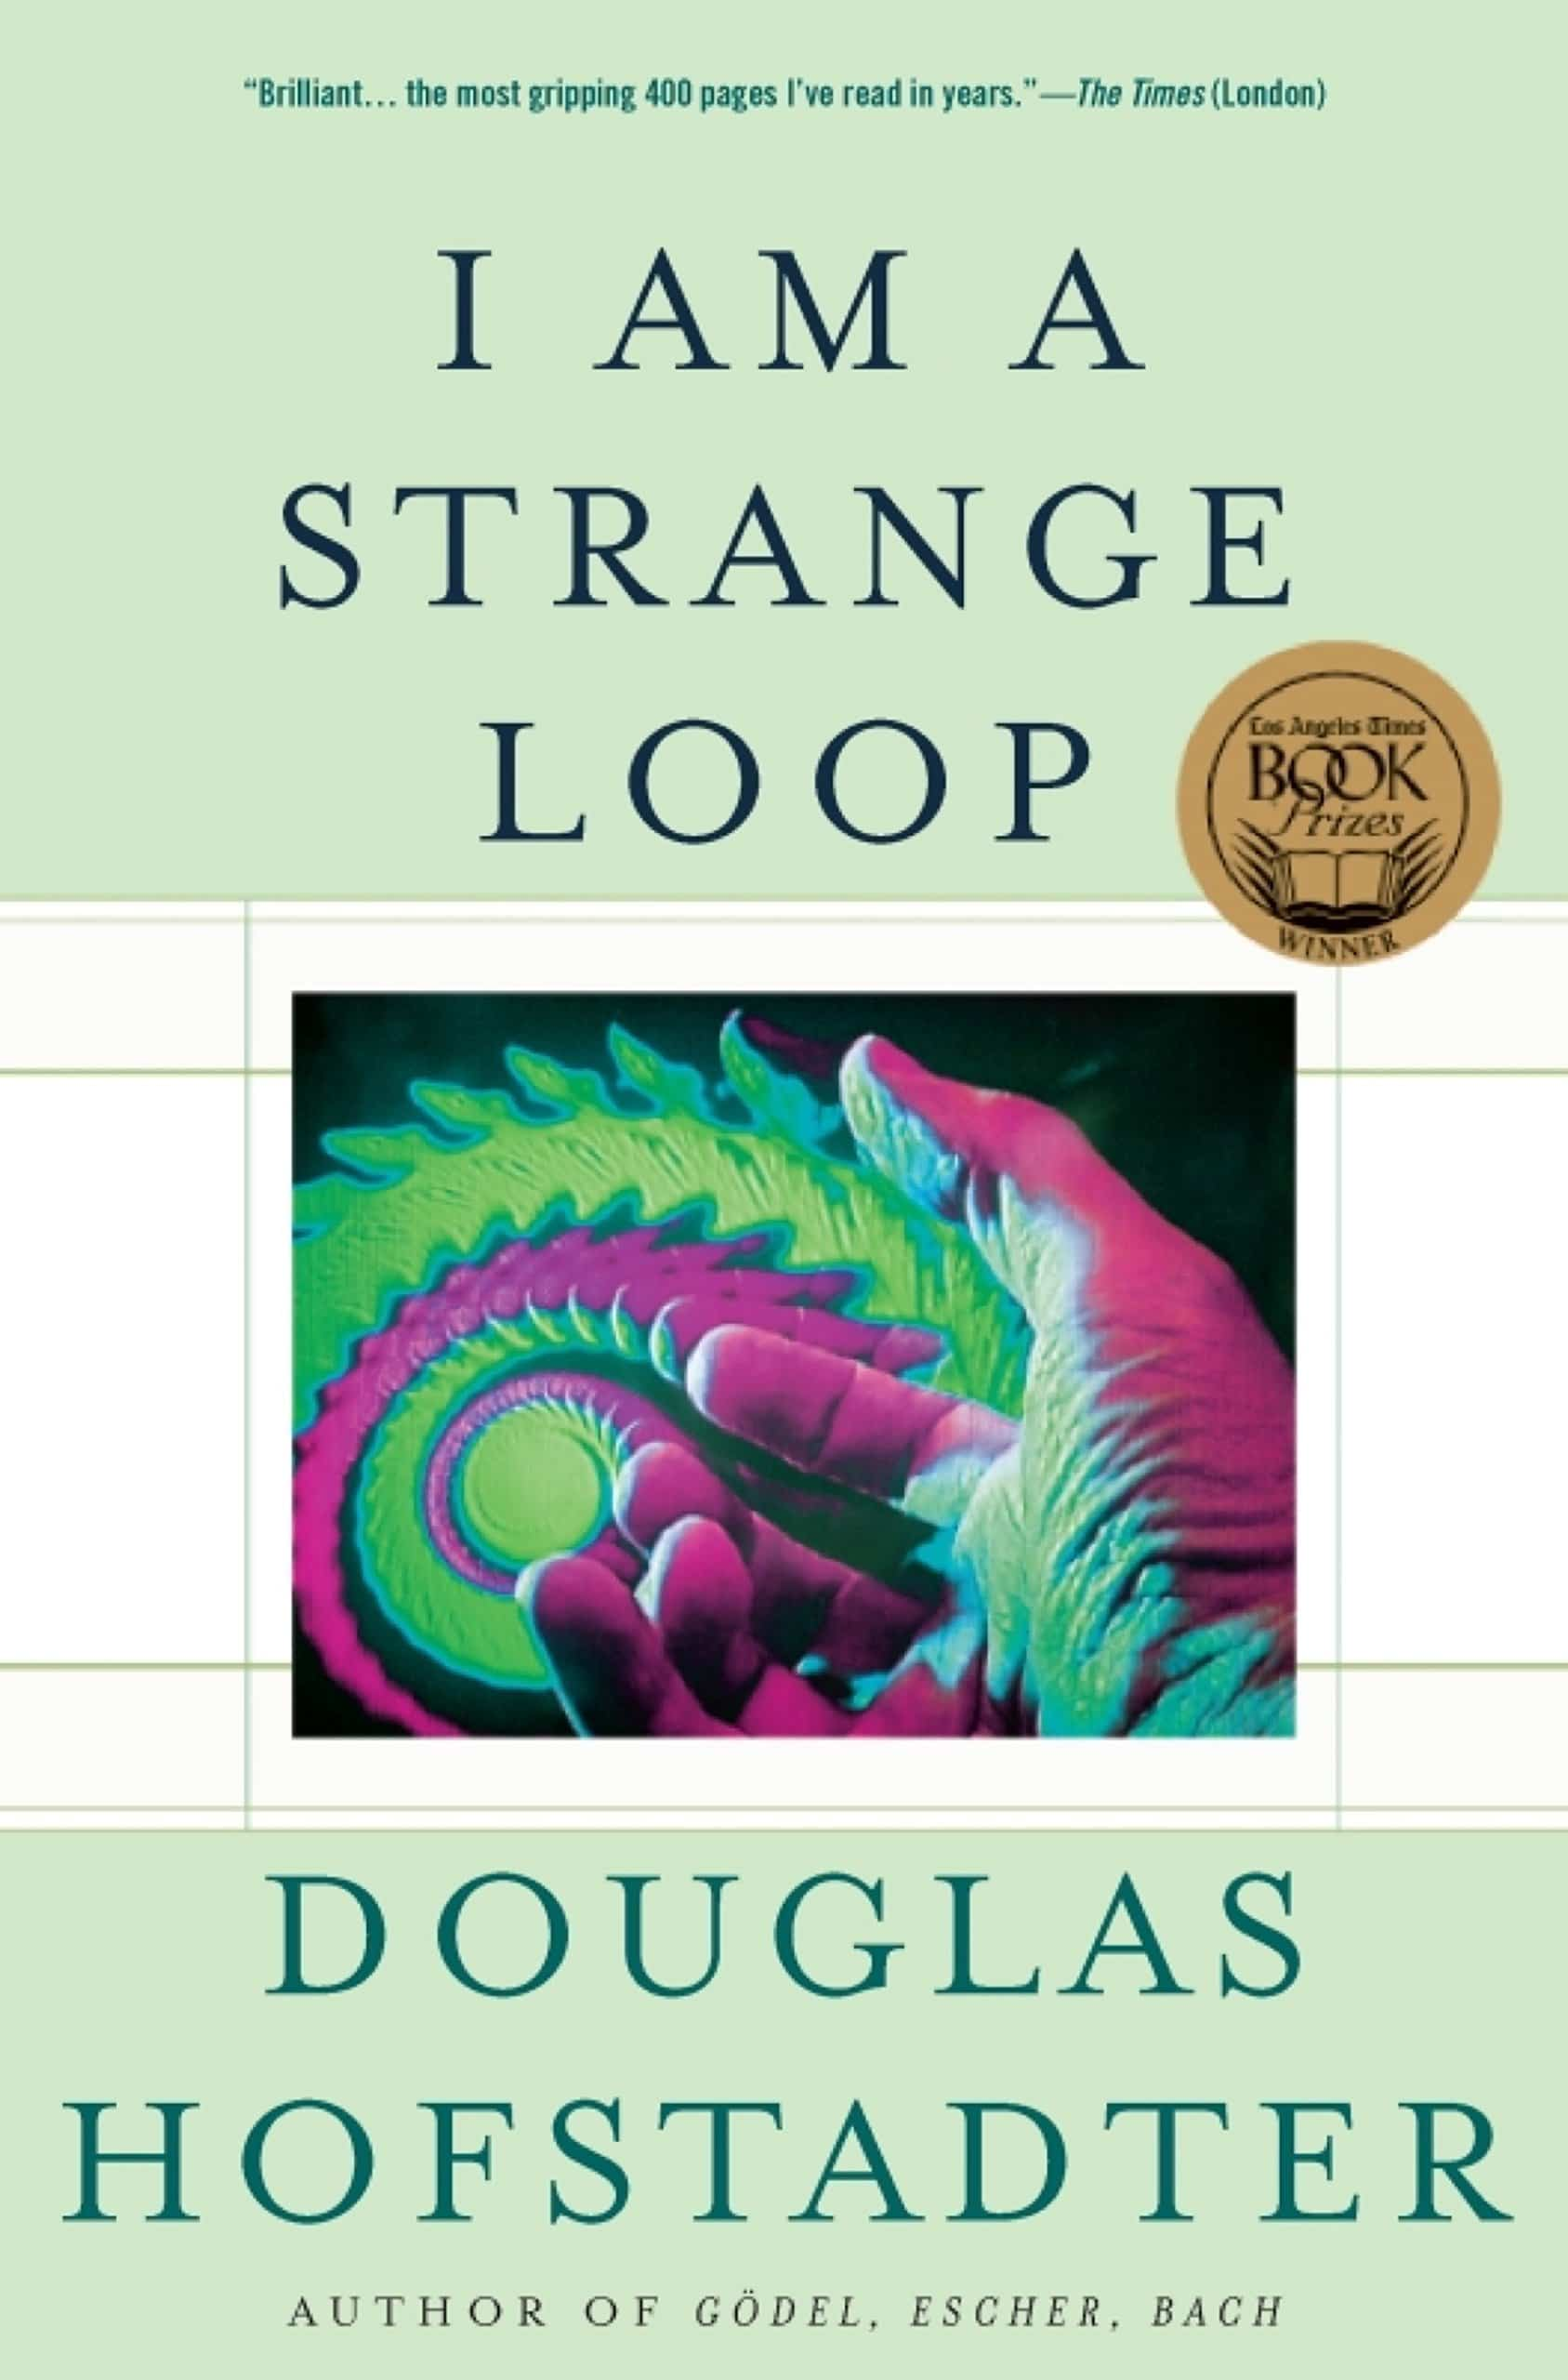 The cover of I Am A Strange Loop